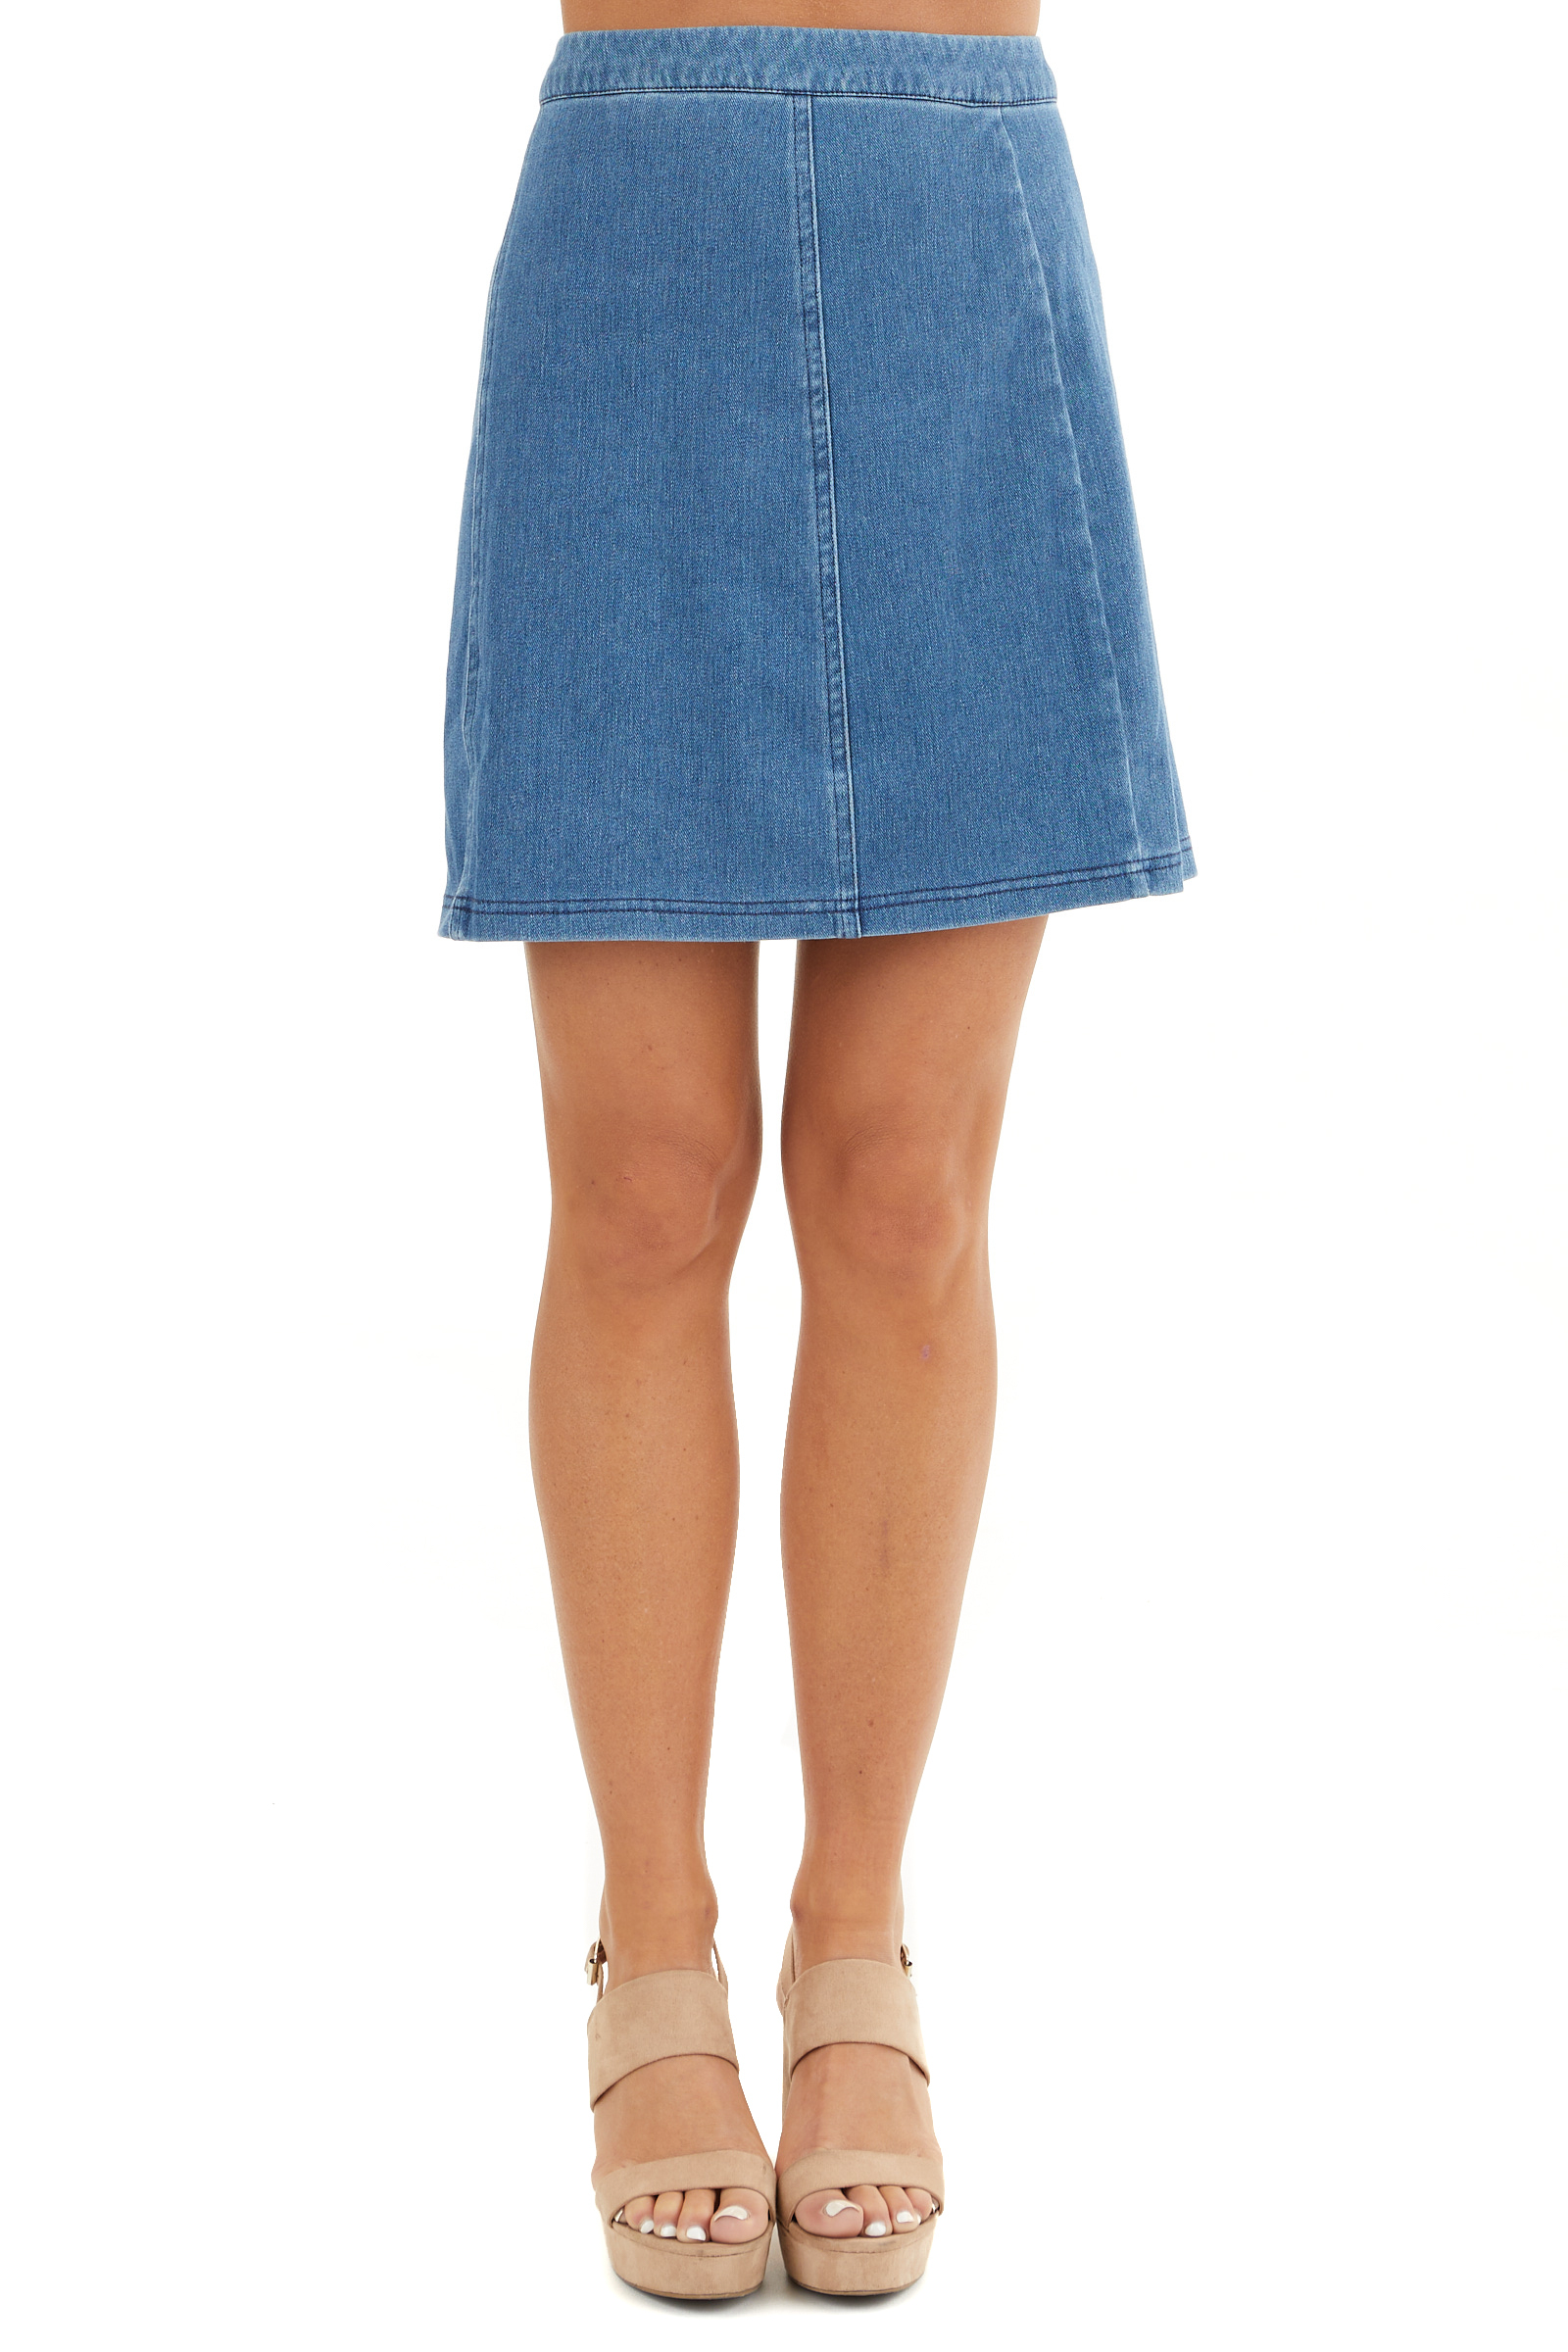 Denim Blue Zip Up Stretchy Mini Skirt front view